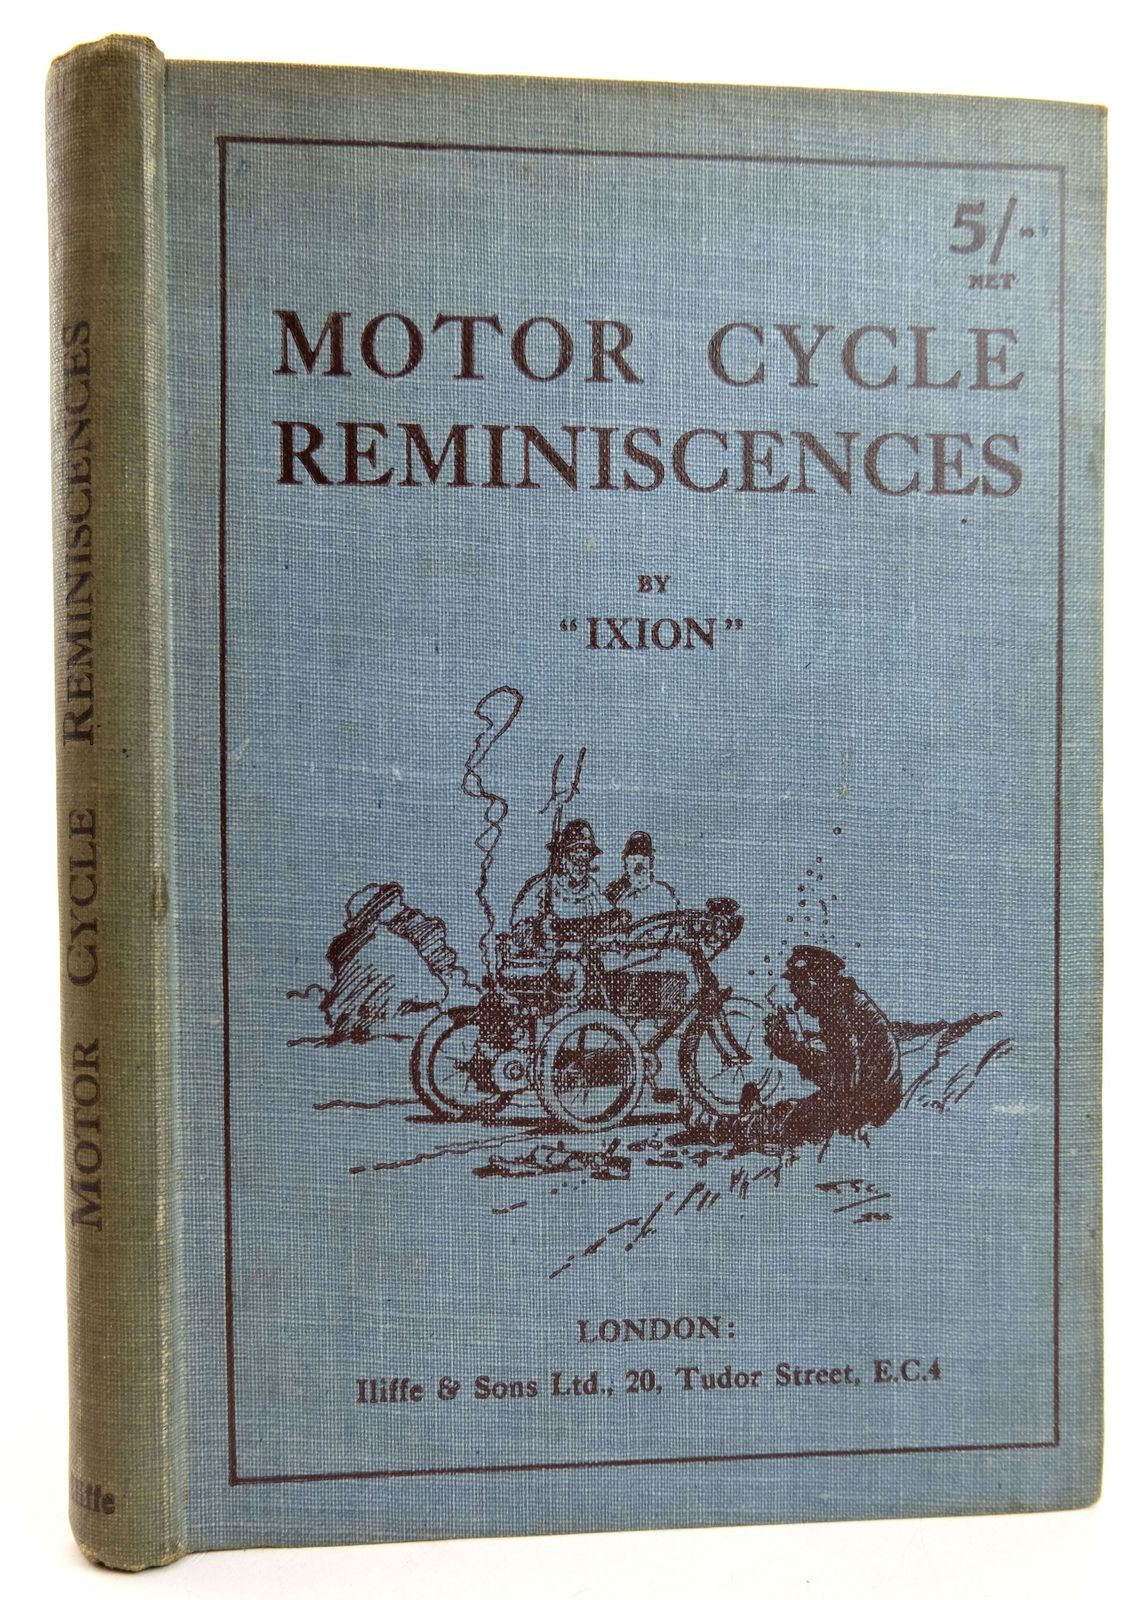 Photo of MOTOR CYCLE REMINISCENCES- Stock Number: 1819460